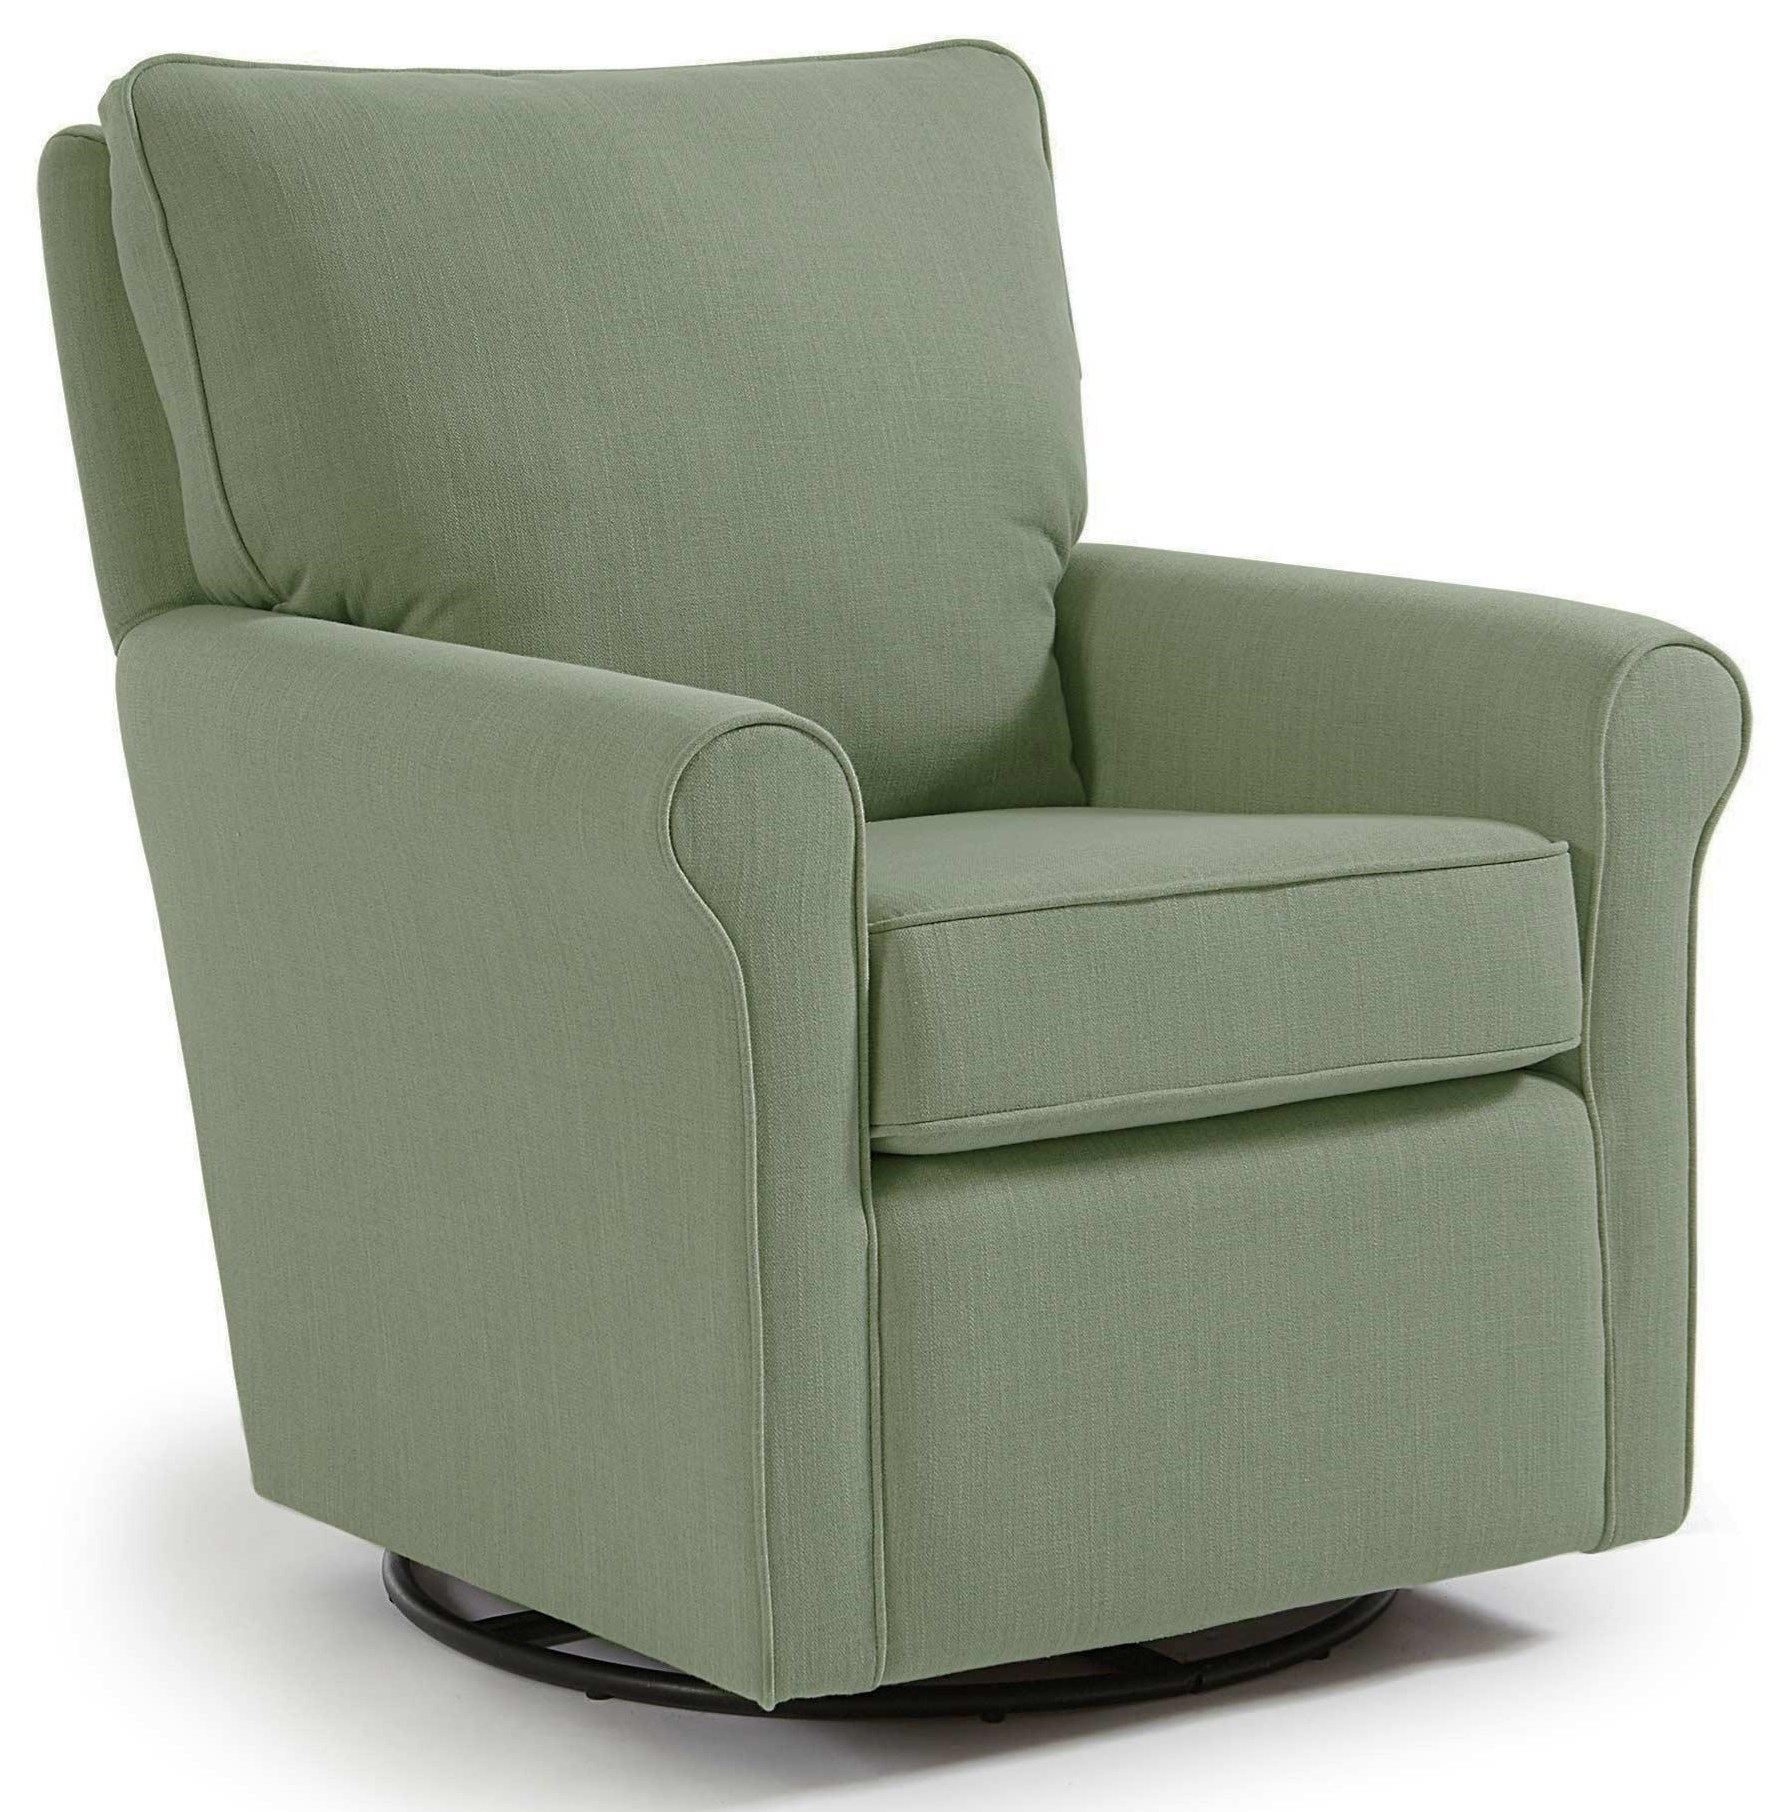 Storytime Chair Kacey Casual Swivel Glider Chair By Best Home Furnishings At Rotmans